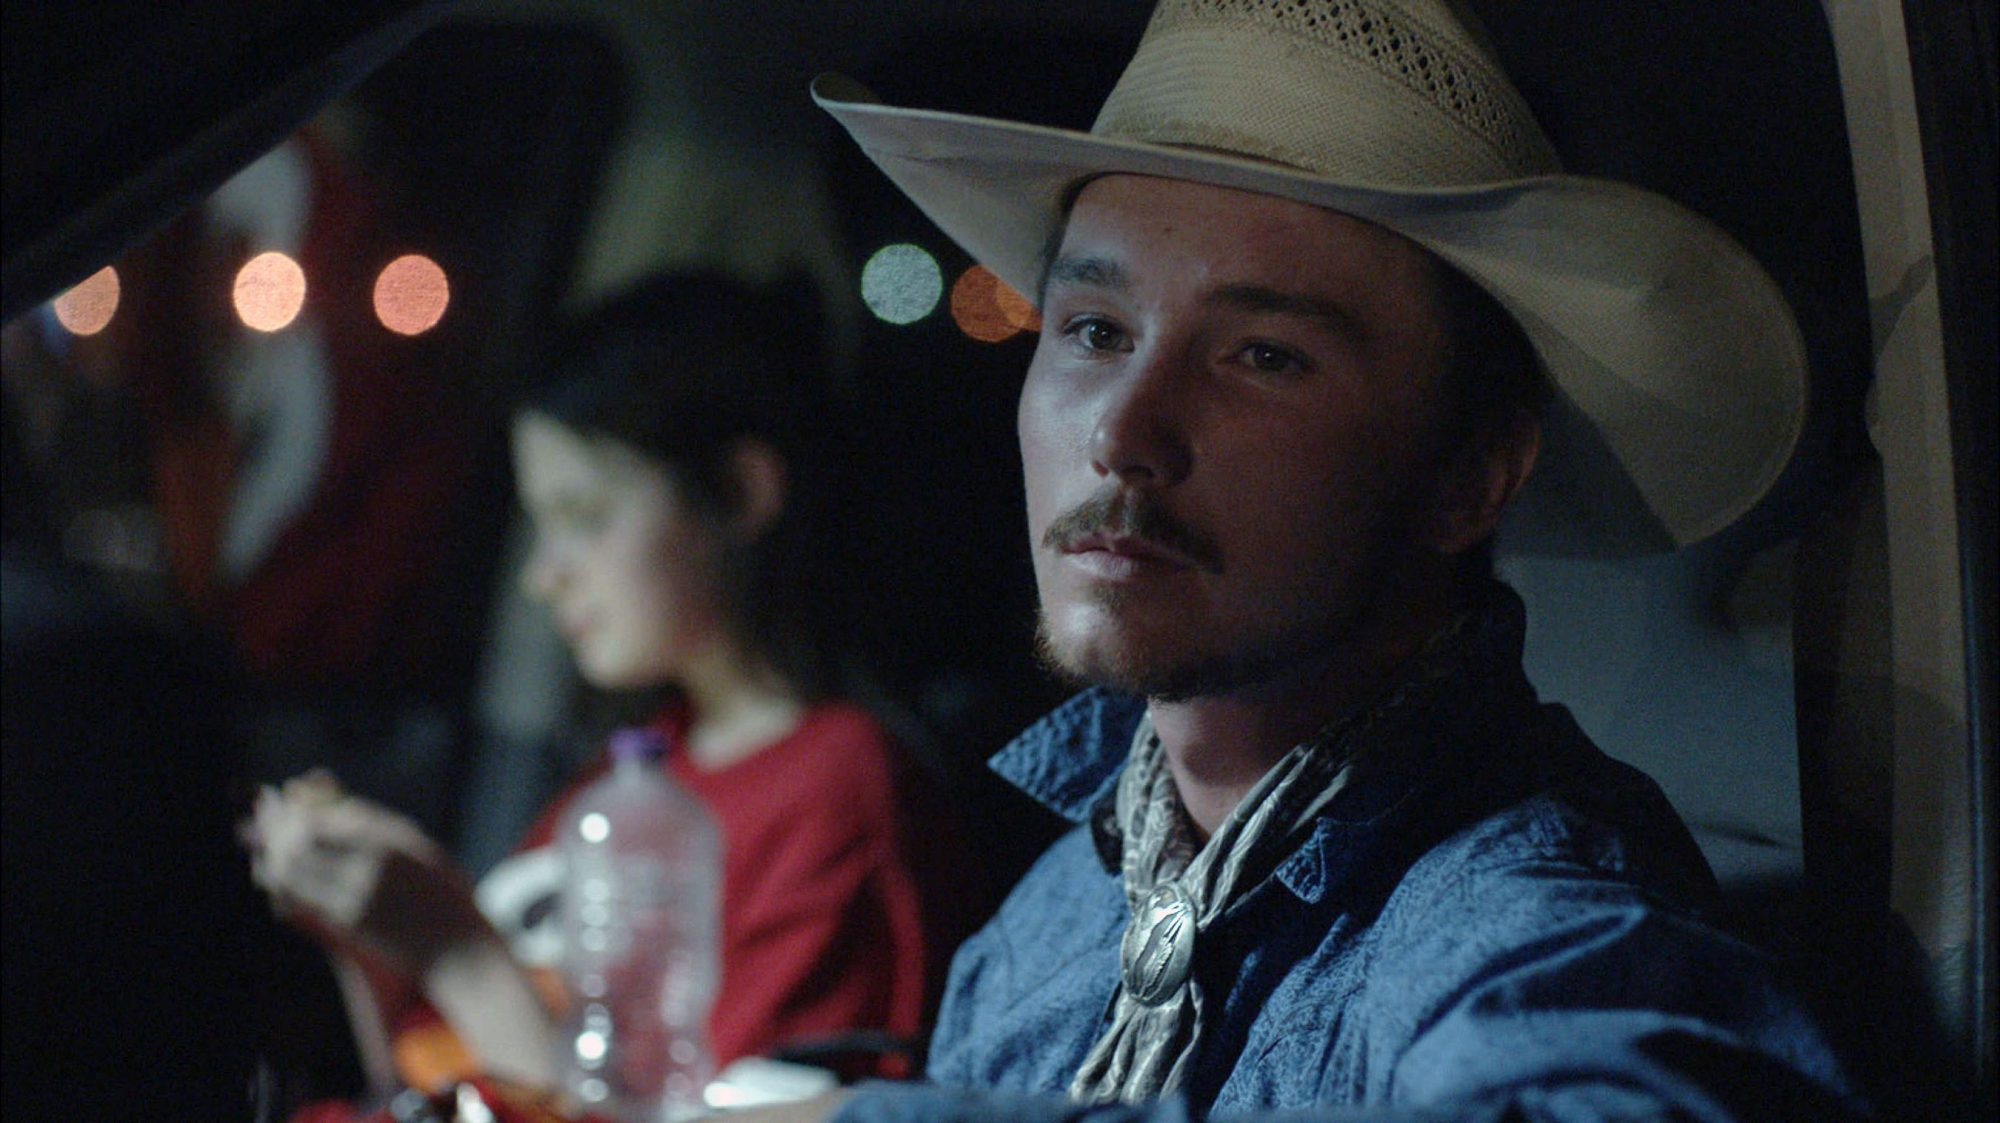 The Rider directed by Chloé Zhao